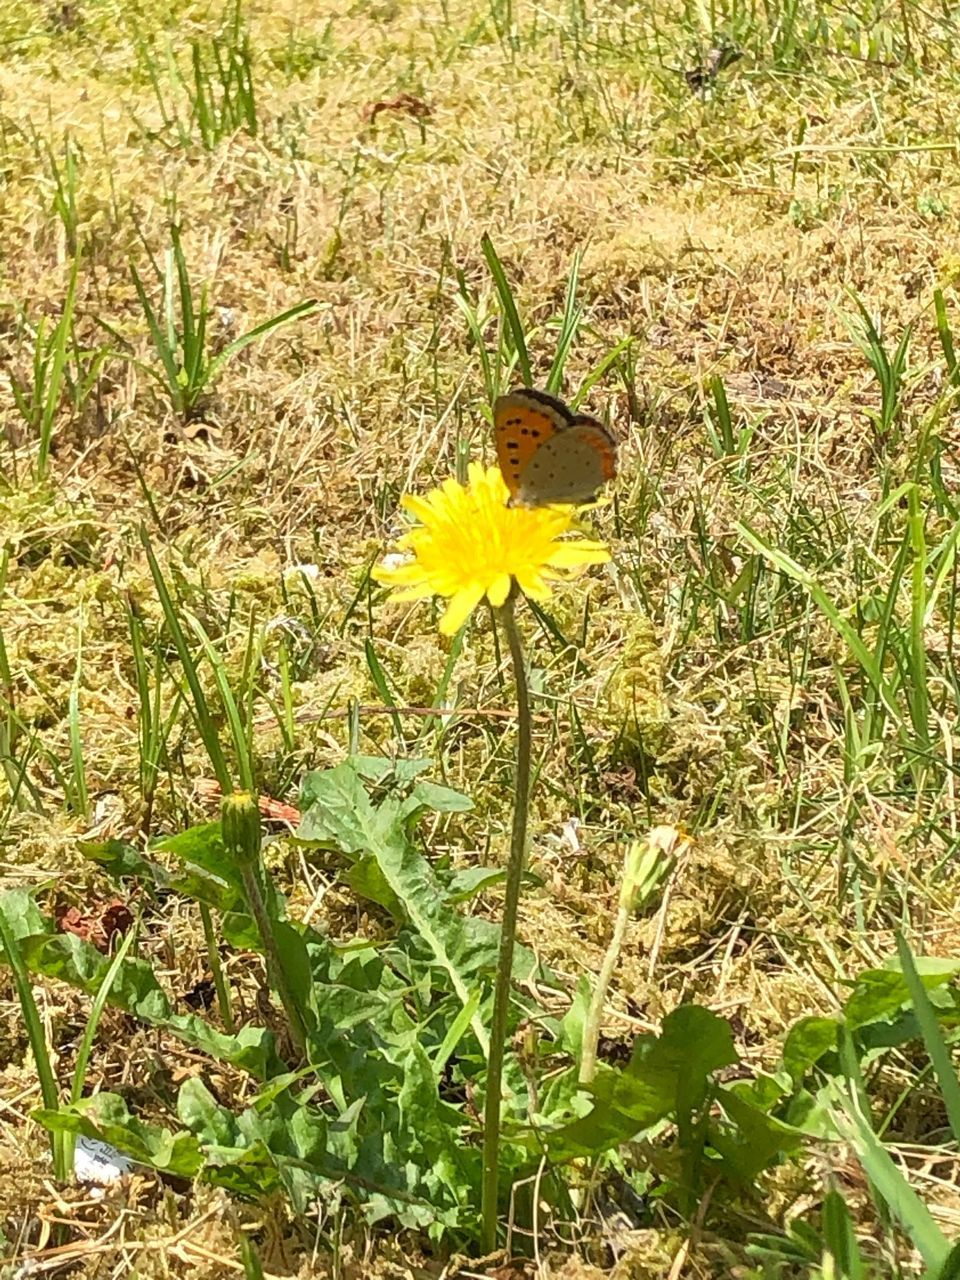 flower, flowering plant, plant, growth, beauty in nature, yellow, fragility, freshness, vulnerability, flower head, petal, nature, land, field, inflorescence, day, green color, one animal, no people, close-up, outdoors, pollen, butterfly - insect, pollination, butterfly